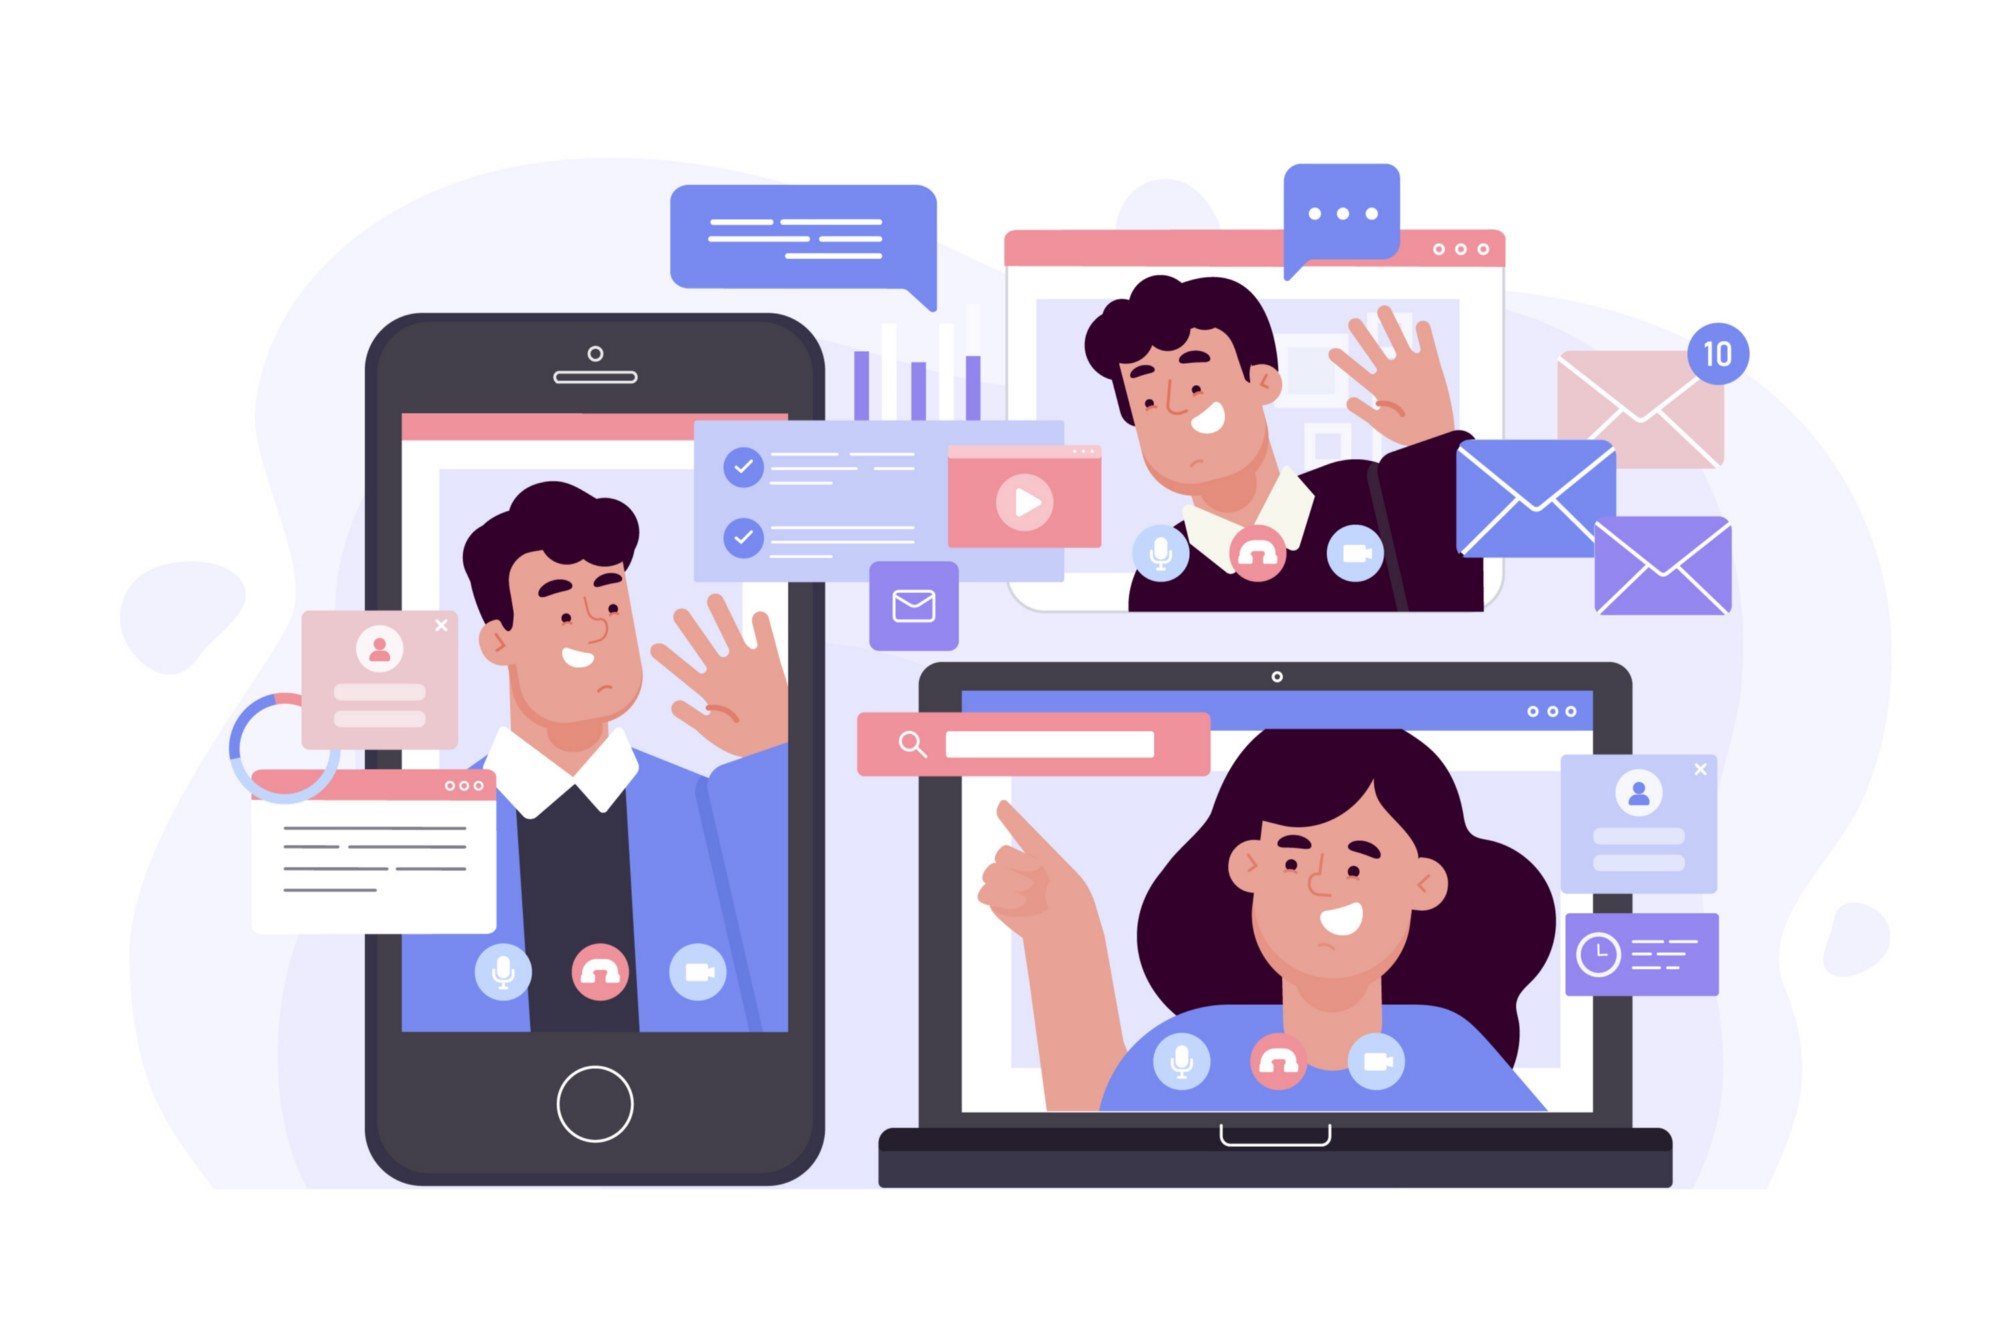 illustration representing people collaborating remotely using different kinds of devices